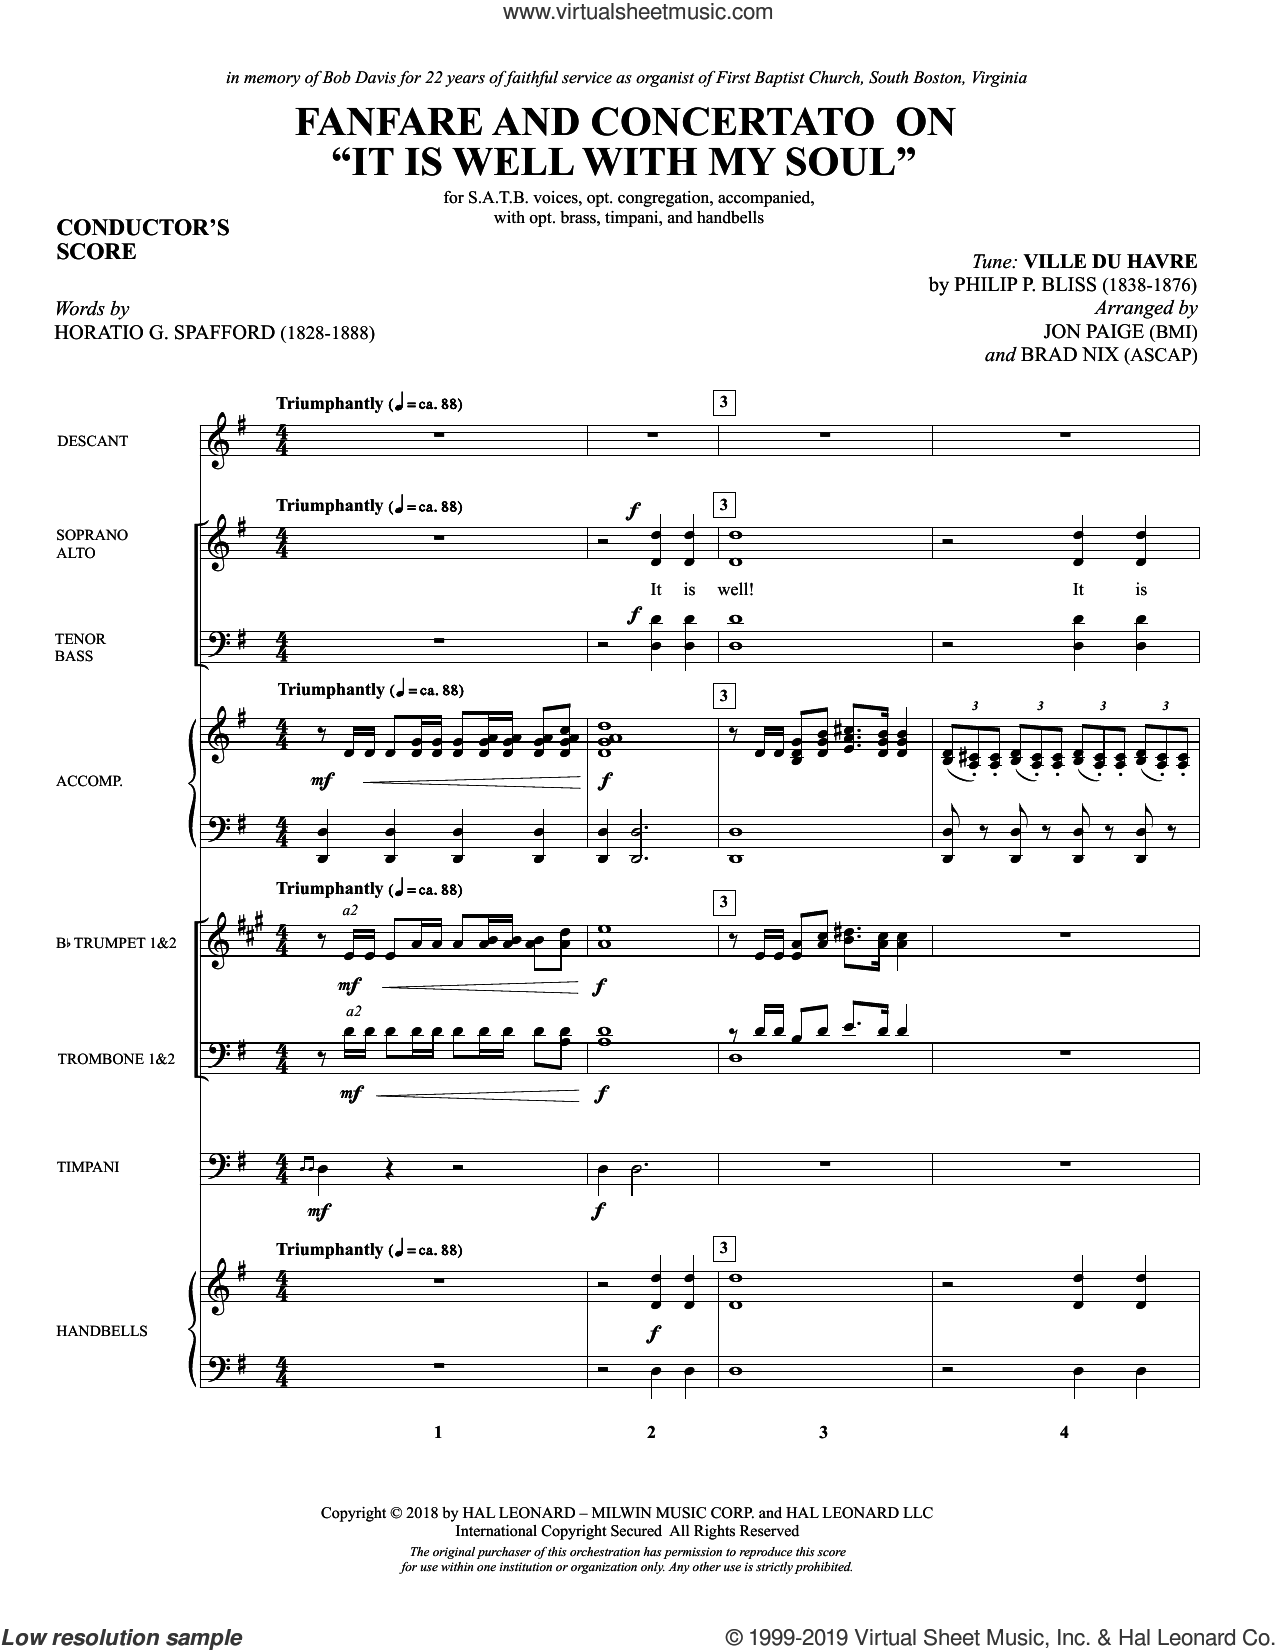 Fanfare and Concertato on 'It Is Well with My Soul' sheet music for orchestra/band (full score) by Philip P. Bliss, Jon Paige & Brad Nix and Horatio Spafford, intermediate skill level